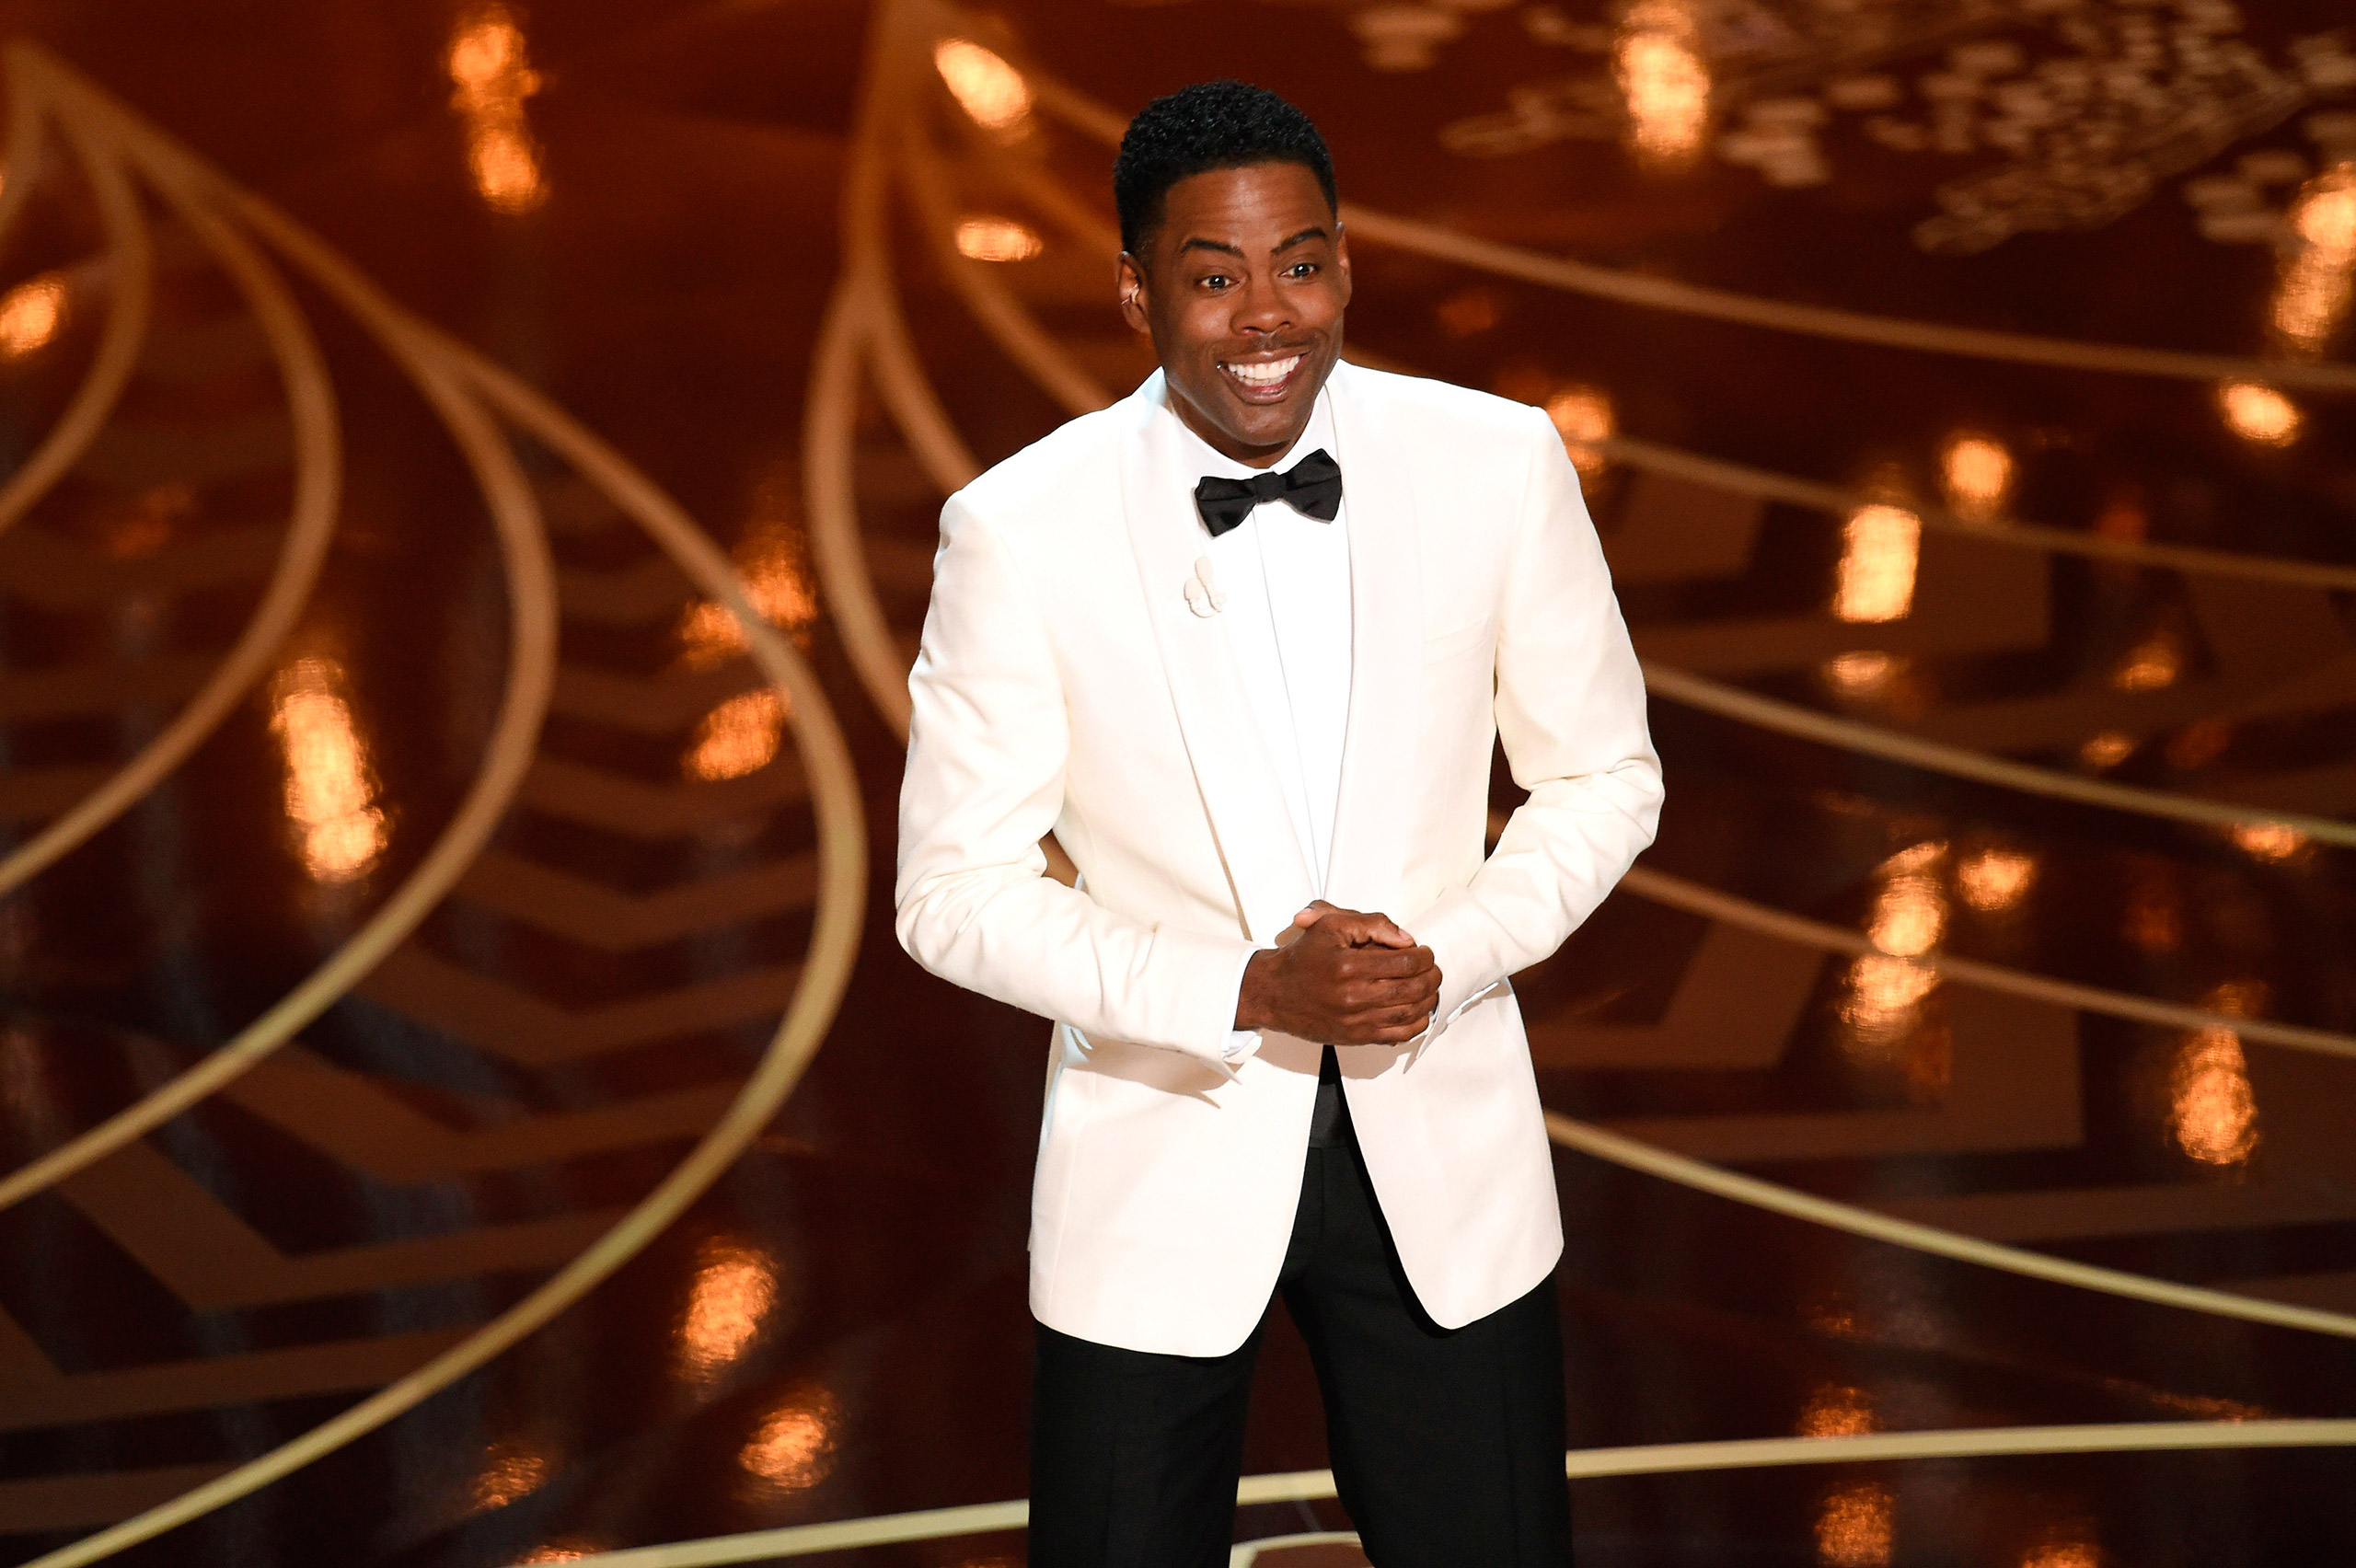 Chris Rock speaks onstage during the 88th Annual Academy Awards at the Dolby Theatre in Hollywood, Calif, Feb. 28, 2016. Kevin Winter—Getty Images